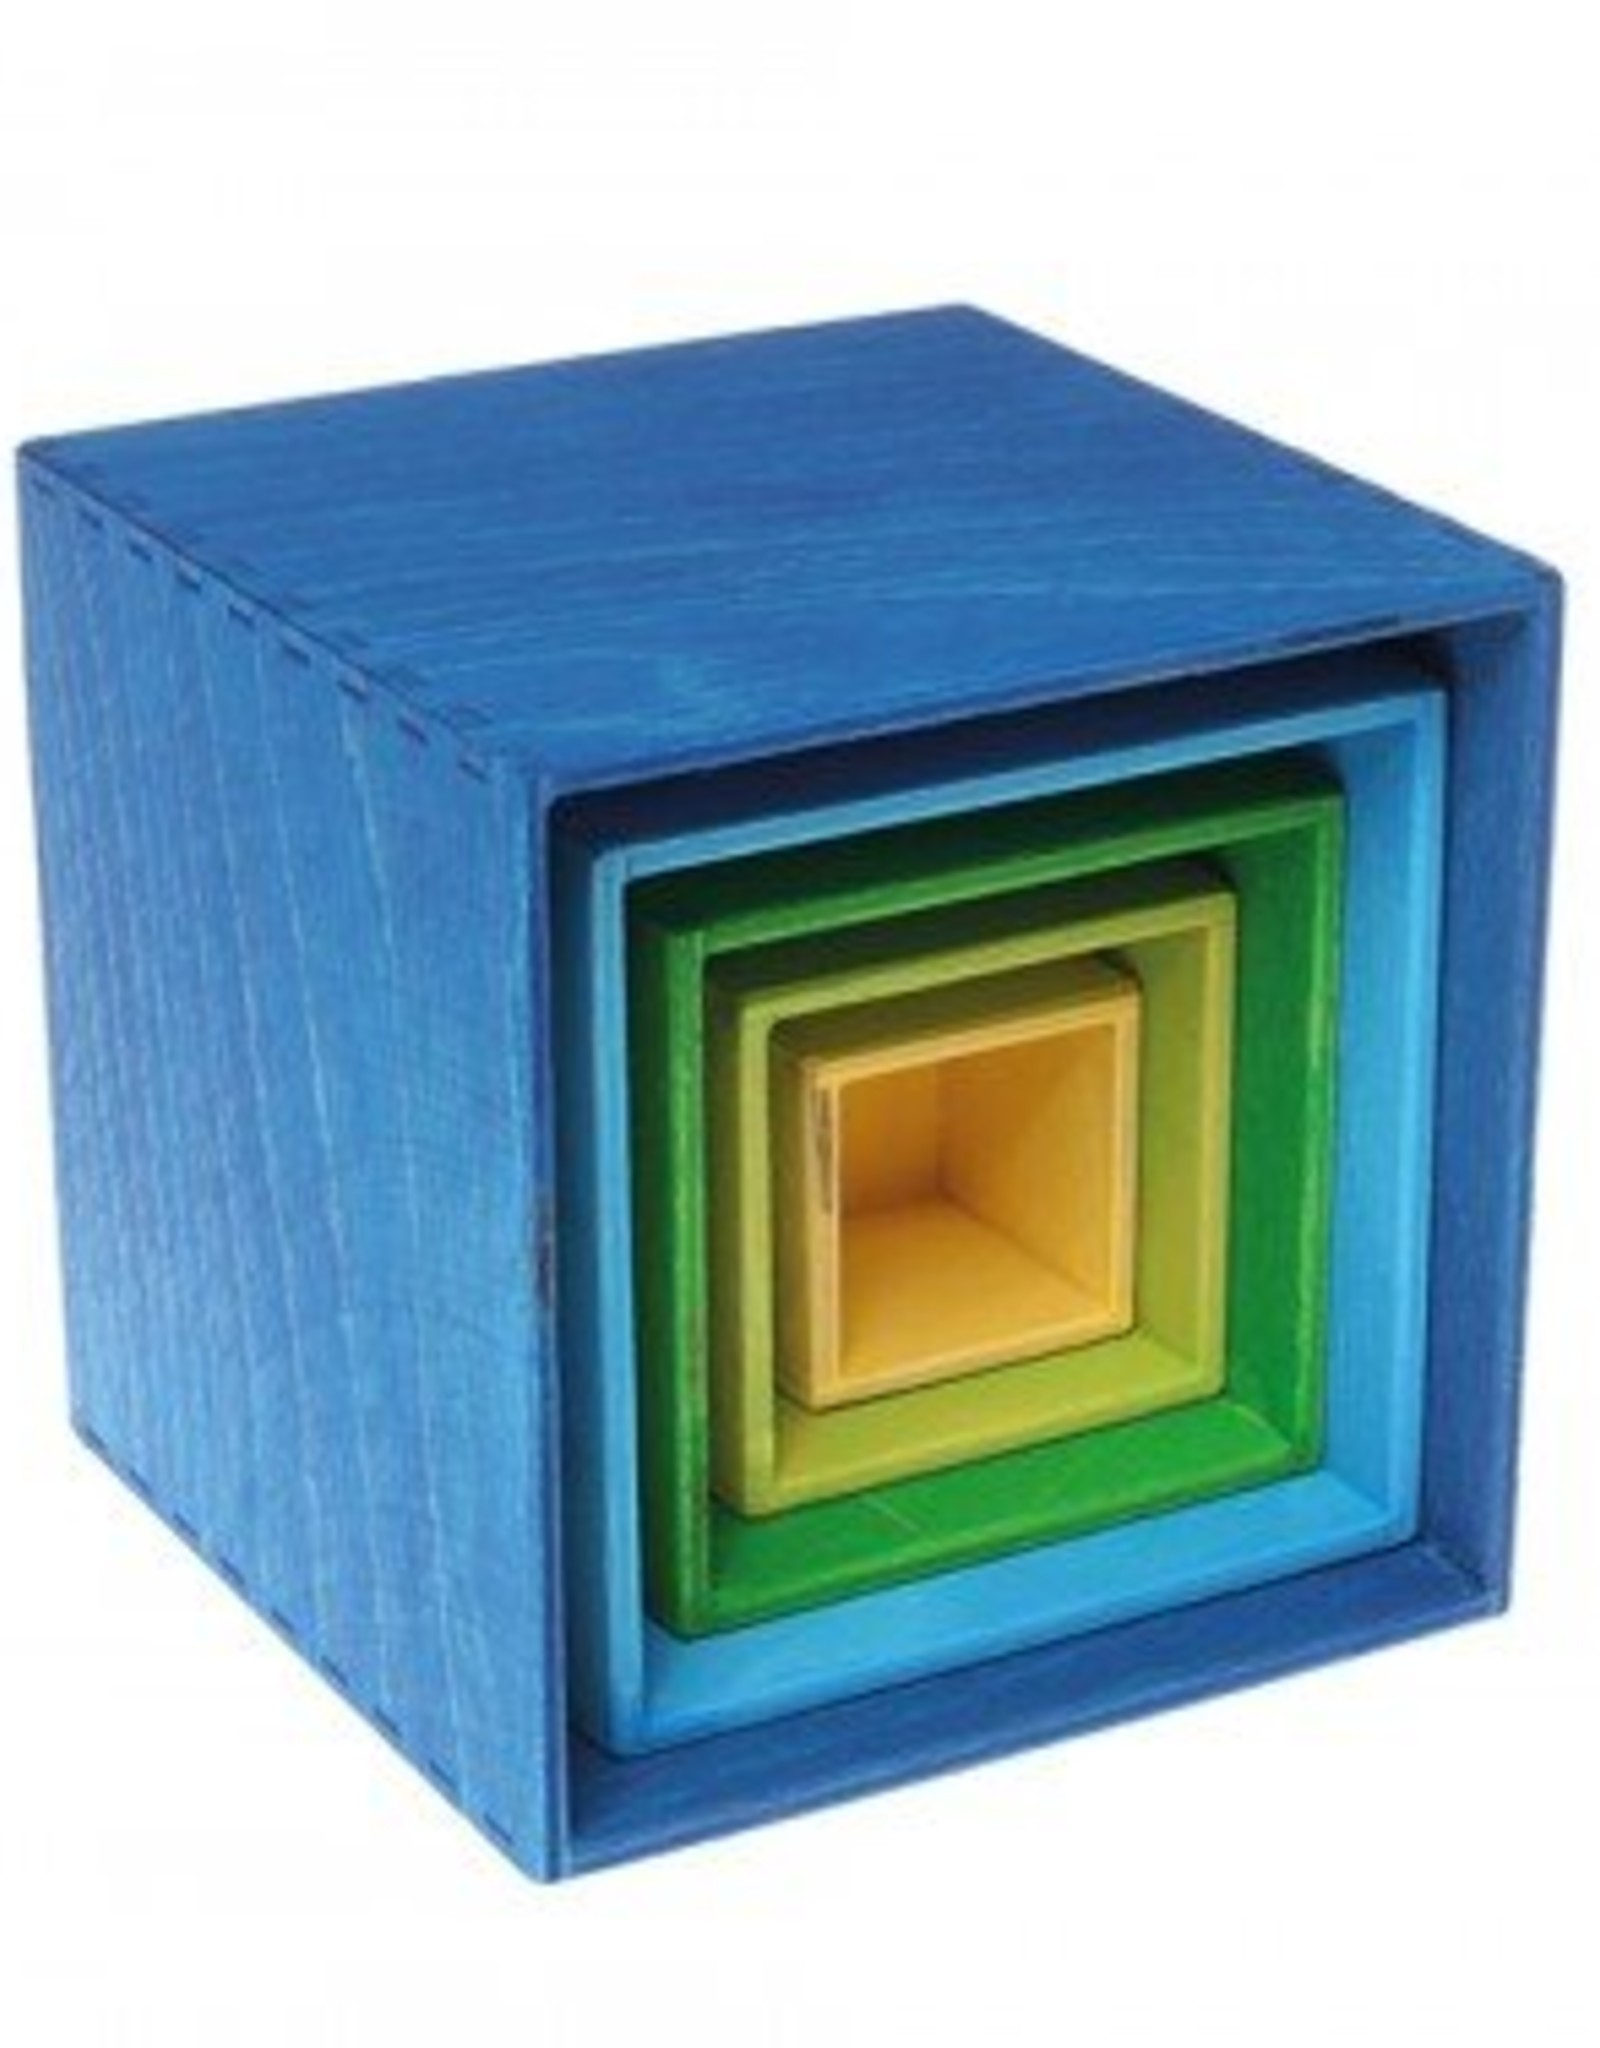 Grimm's Grimm's - Small Stacking Boxes - Blue/Green